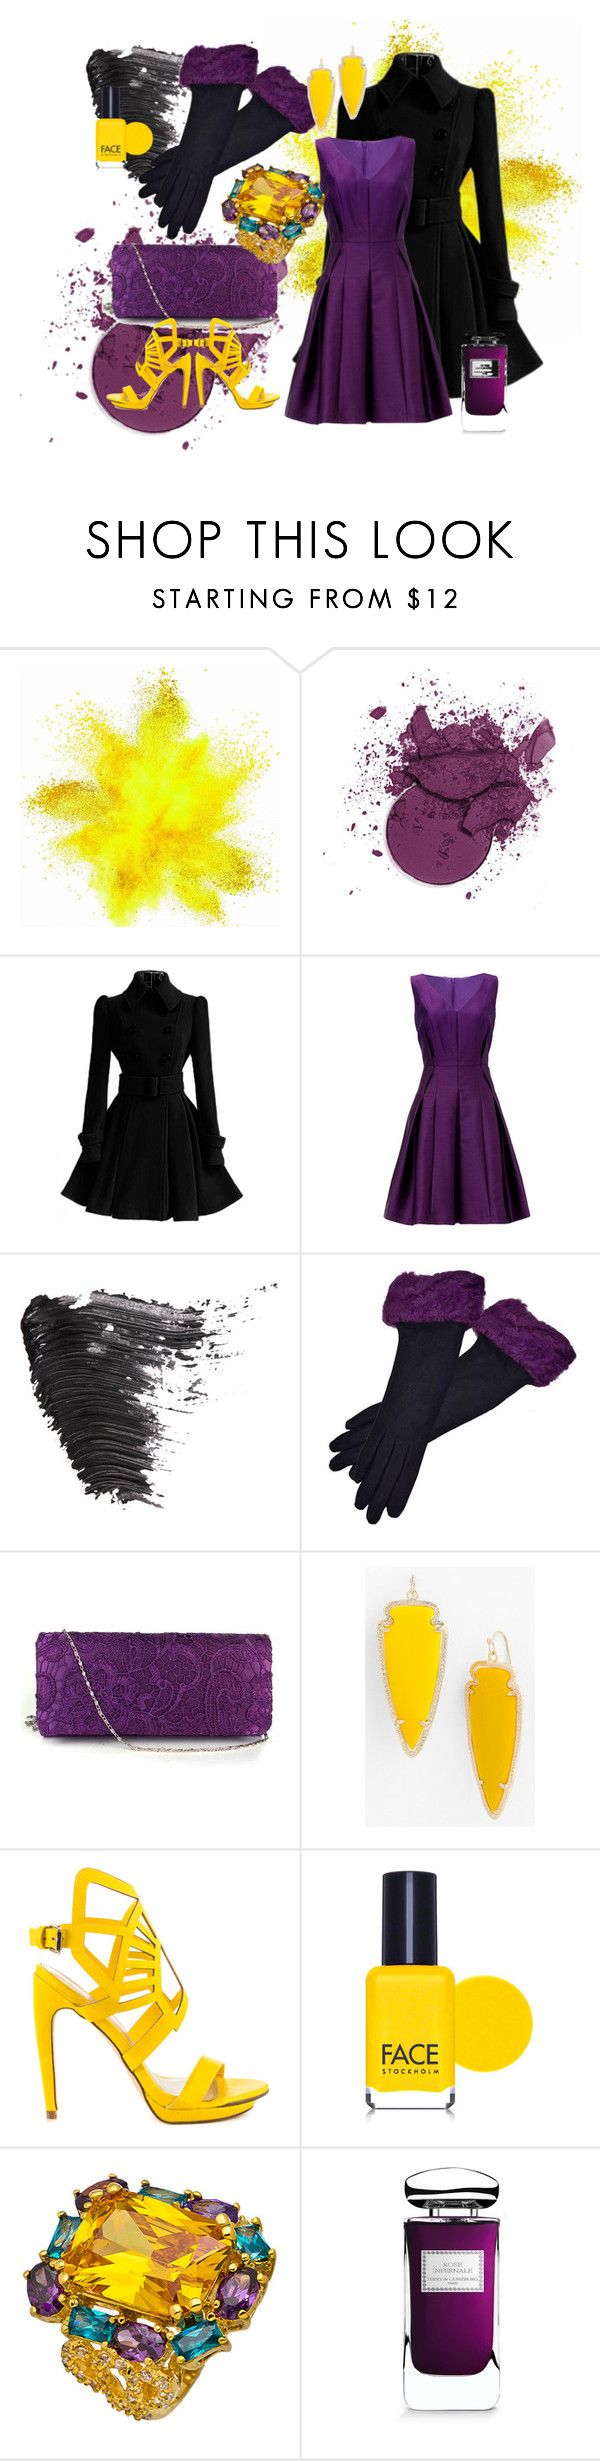 """Purple & Yellow Formal Night Out"" by goldenopal ❤ liked on Polyvore featuring Carmen Marc Valvo, Topshop, Chanel, Kendra Scott, Penny Loves Kenny, FACE Stockholm and By Terry"